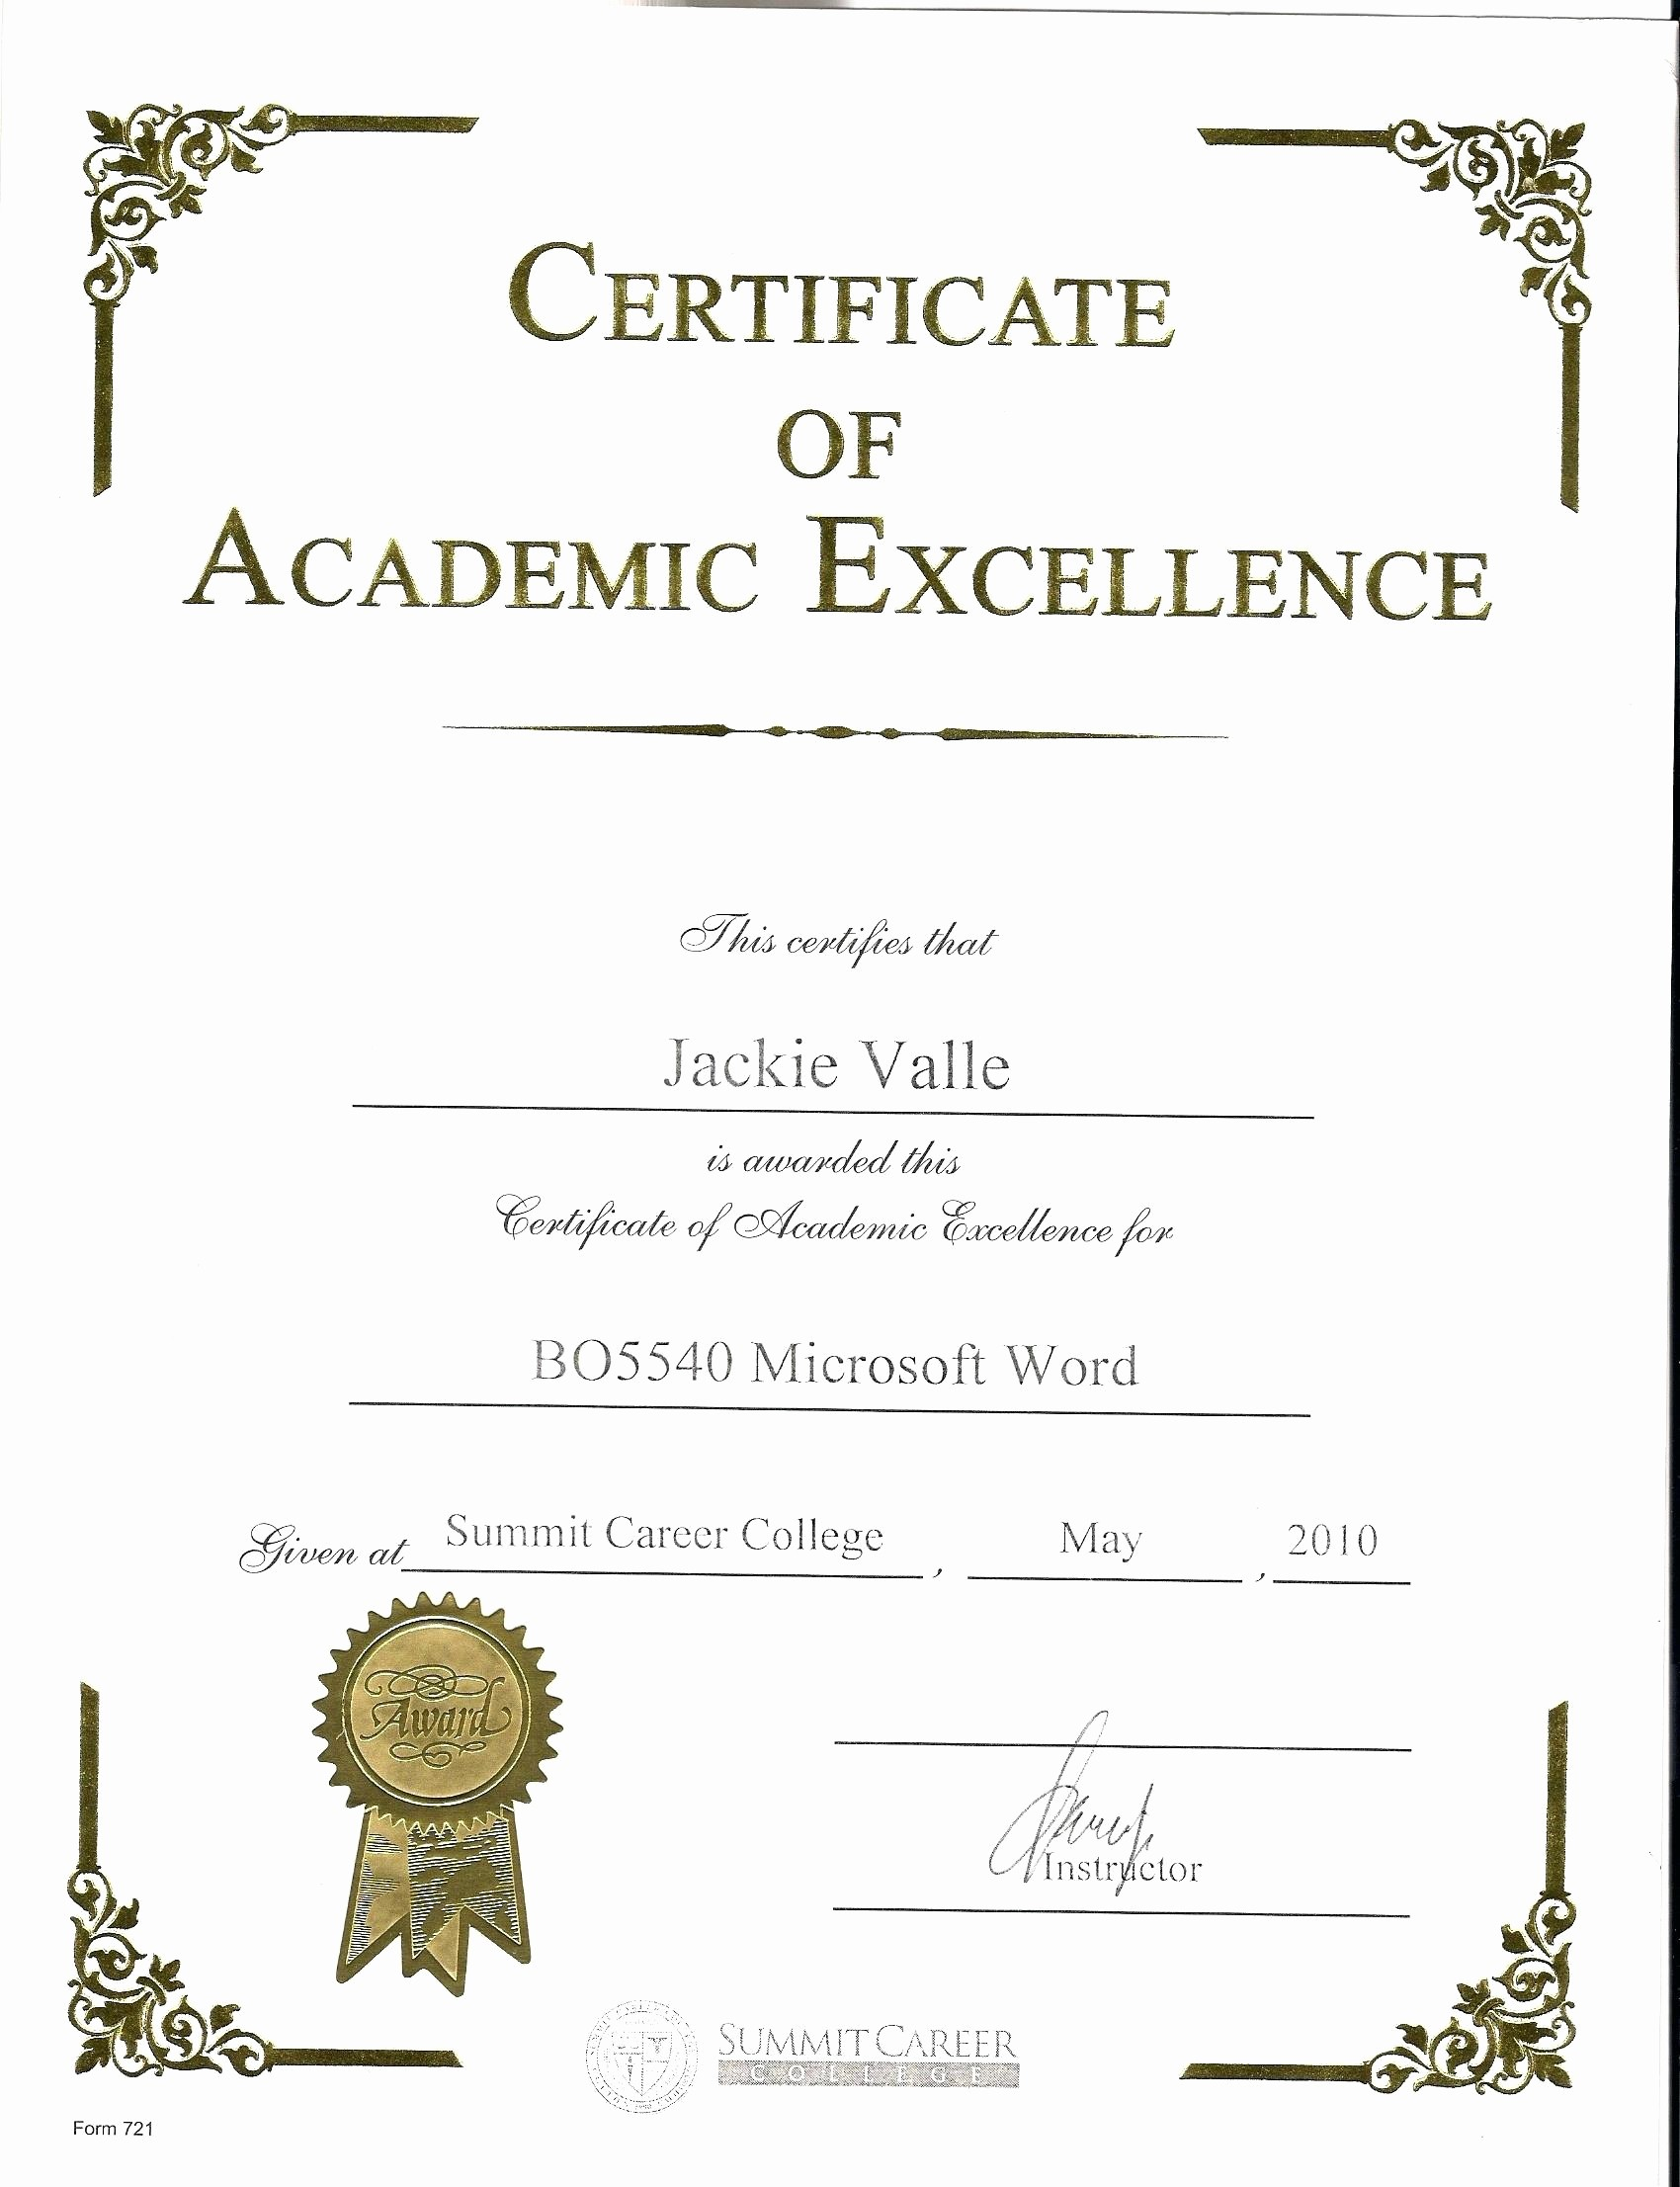 Academic Excellence Award Certificate Template Beautiful Template Award Certificate Template Word